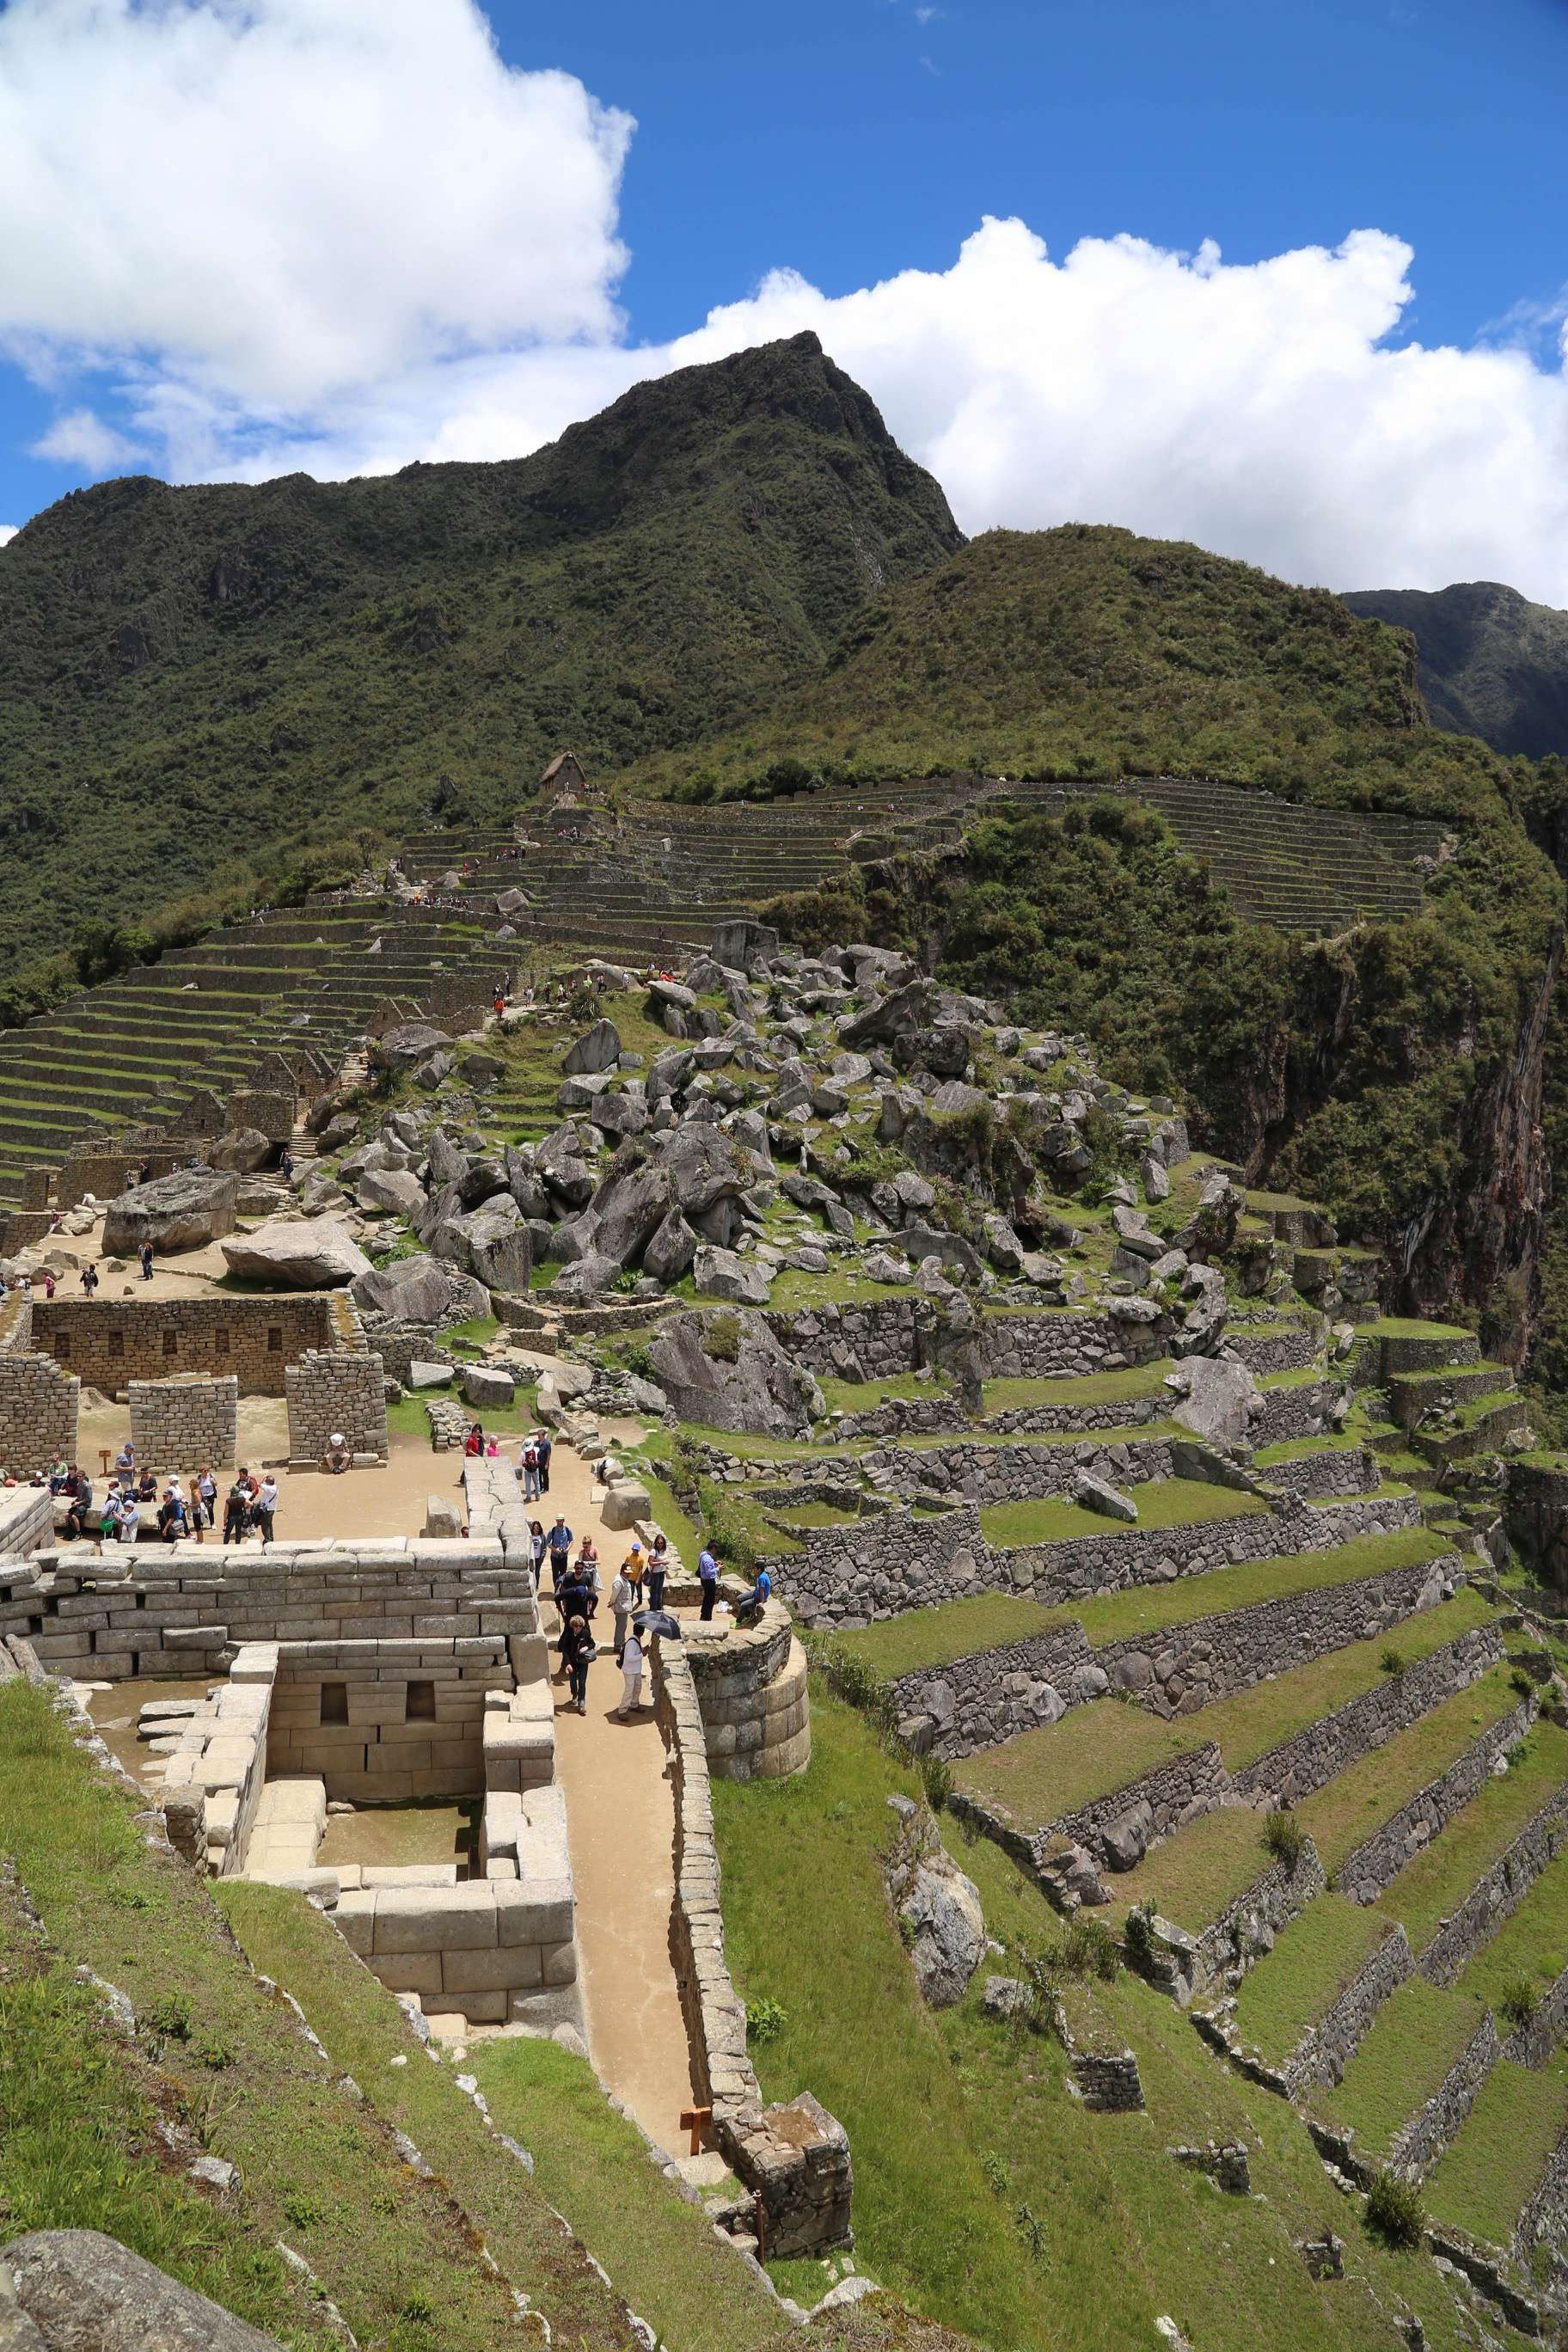 The scale of Machu Picchu is huge, yeat at the same time it blends with harmony into the hillsides and mountains.